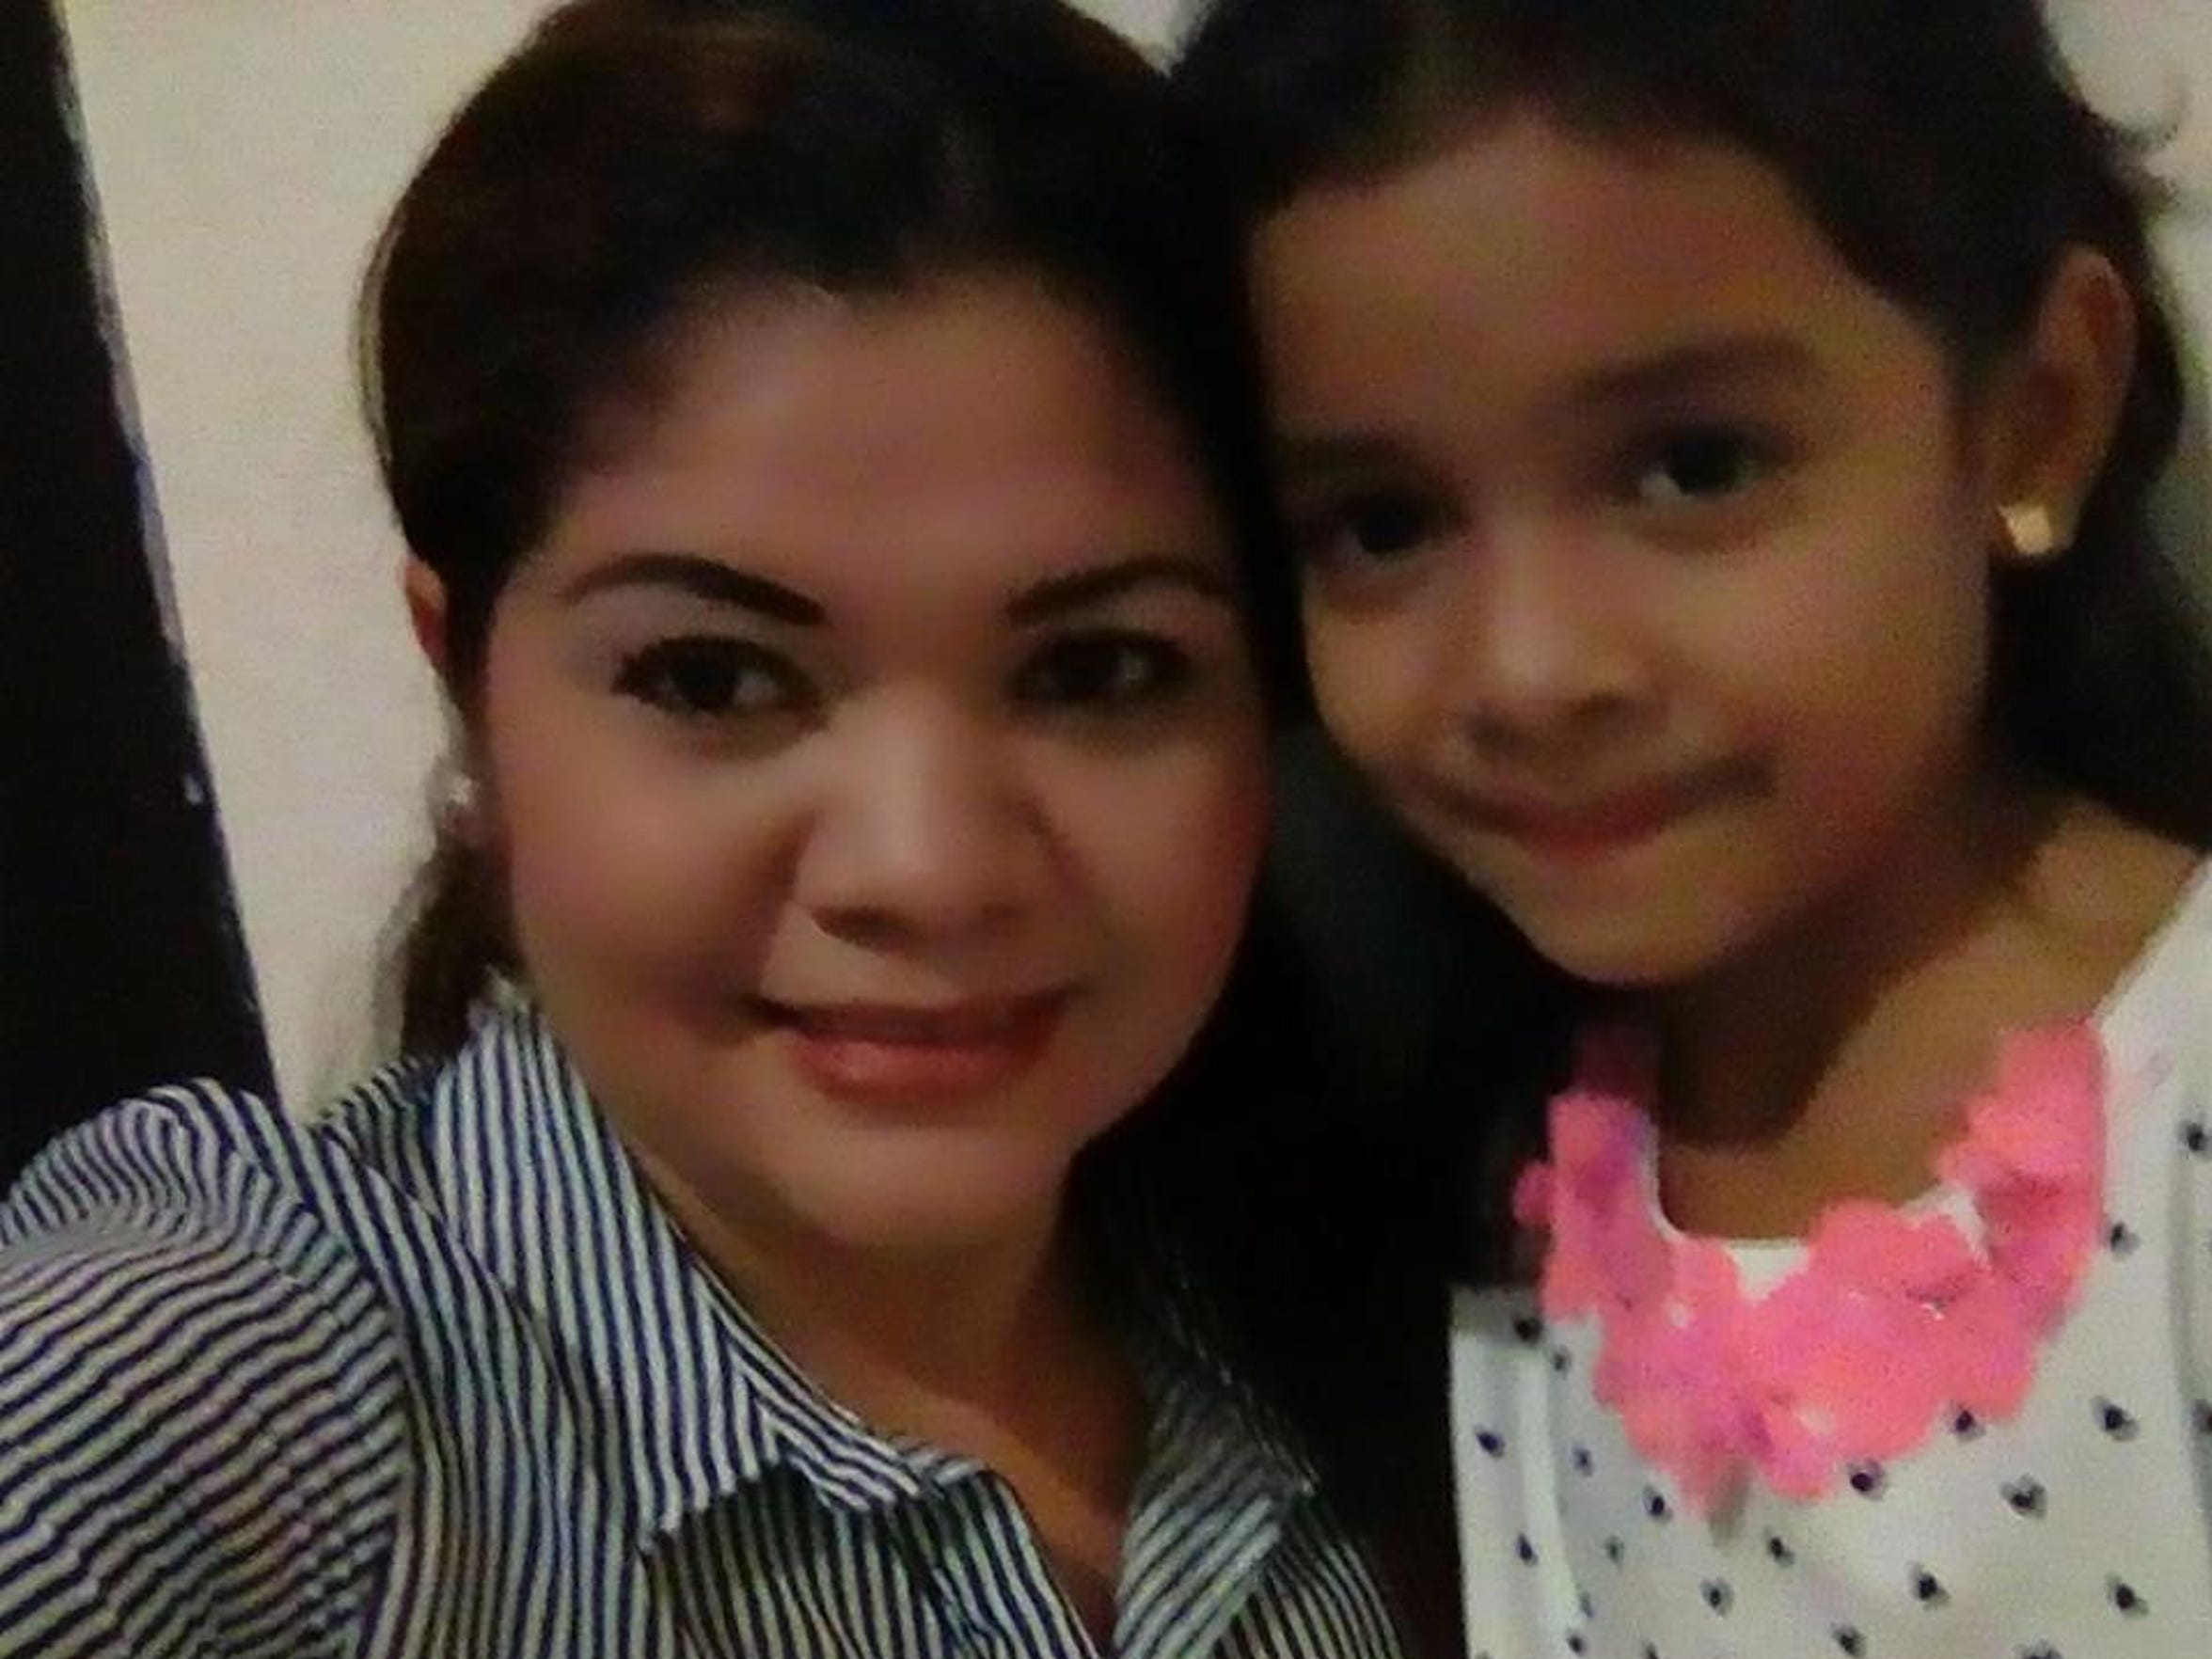 """Alisson Ximena Valencia Madrid, 6, remains more than 1,200 miles aware from her mom, Cindy Alinette Madrid-Henriquez, after being separated because of the """"zero tolerance"""" policy."""